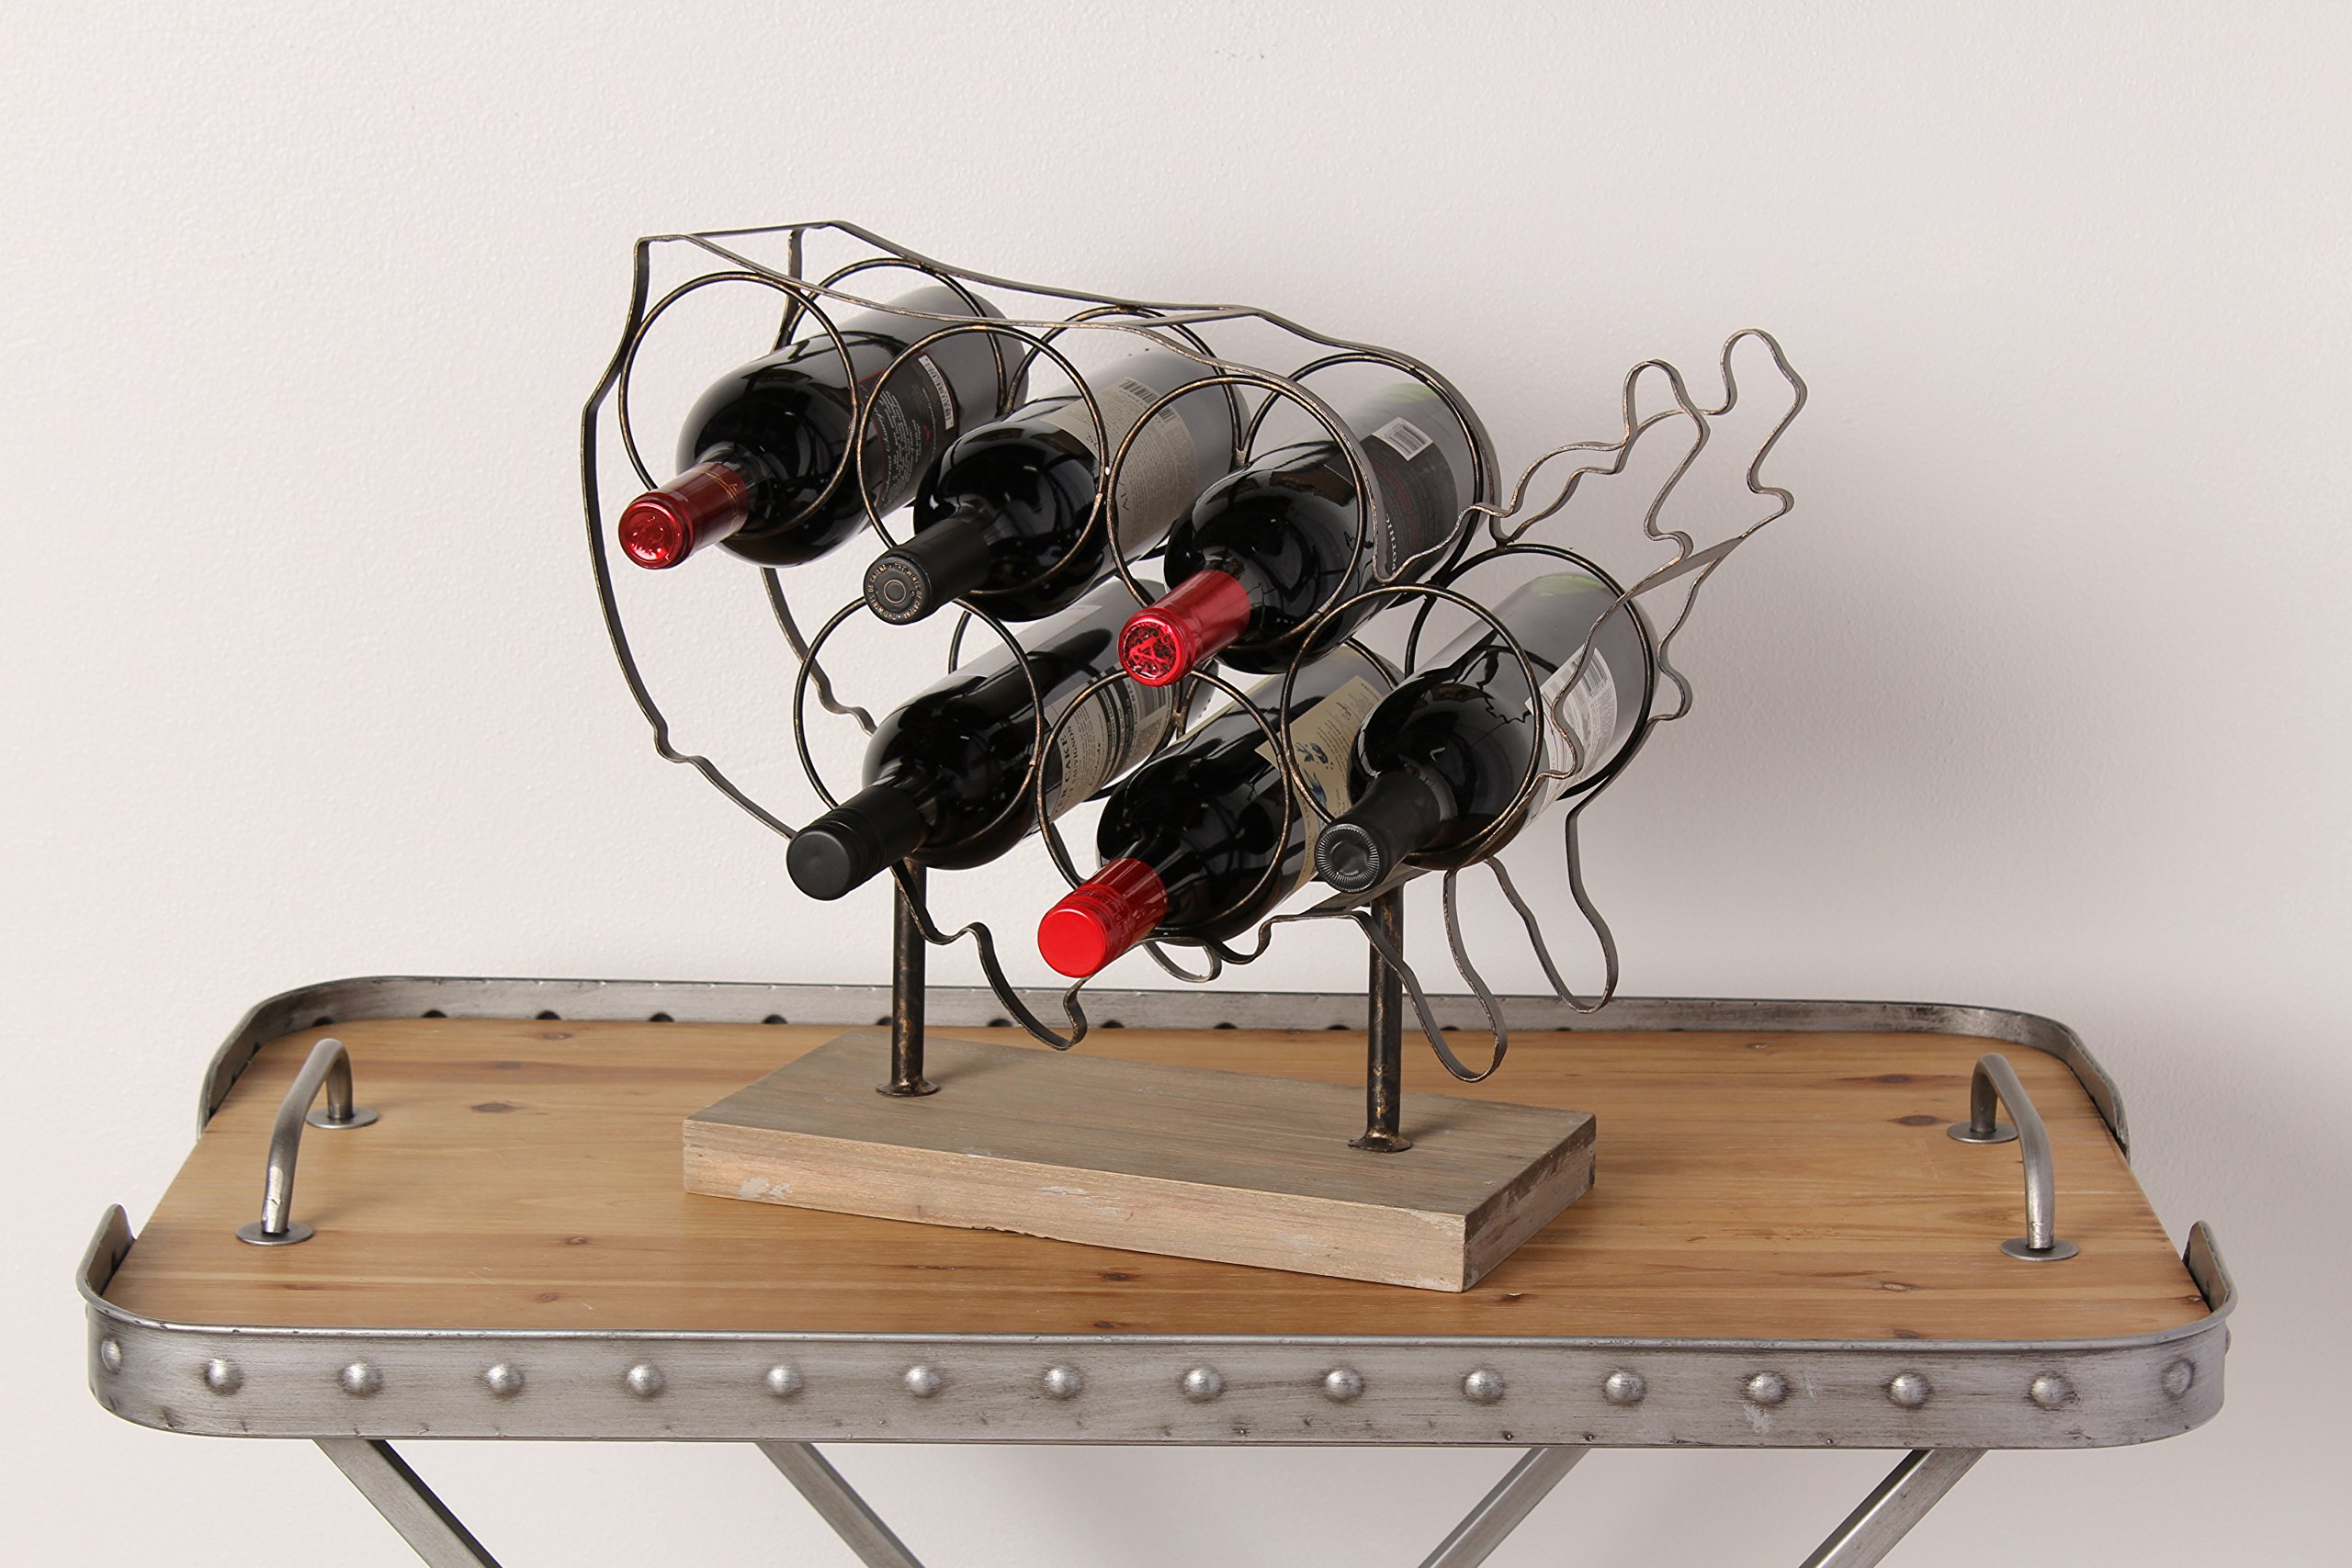 Kate and Laurel America Countertop Lightweight Metal and Wood Wine Rack Holds 6 Wine Bottles